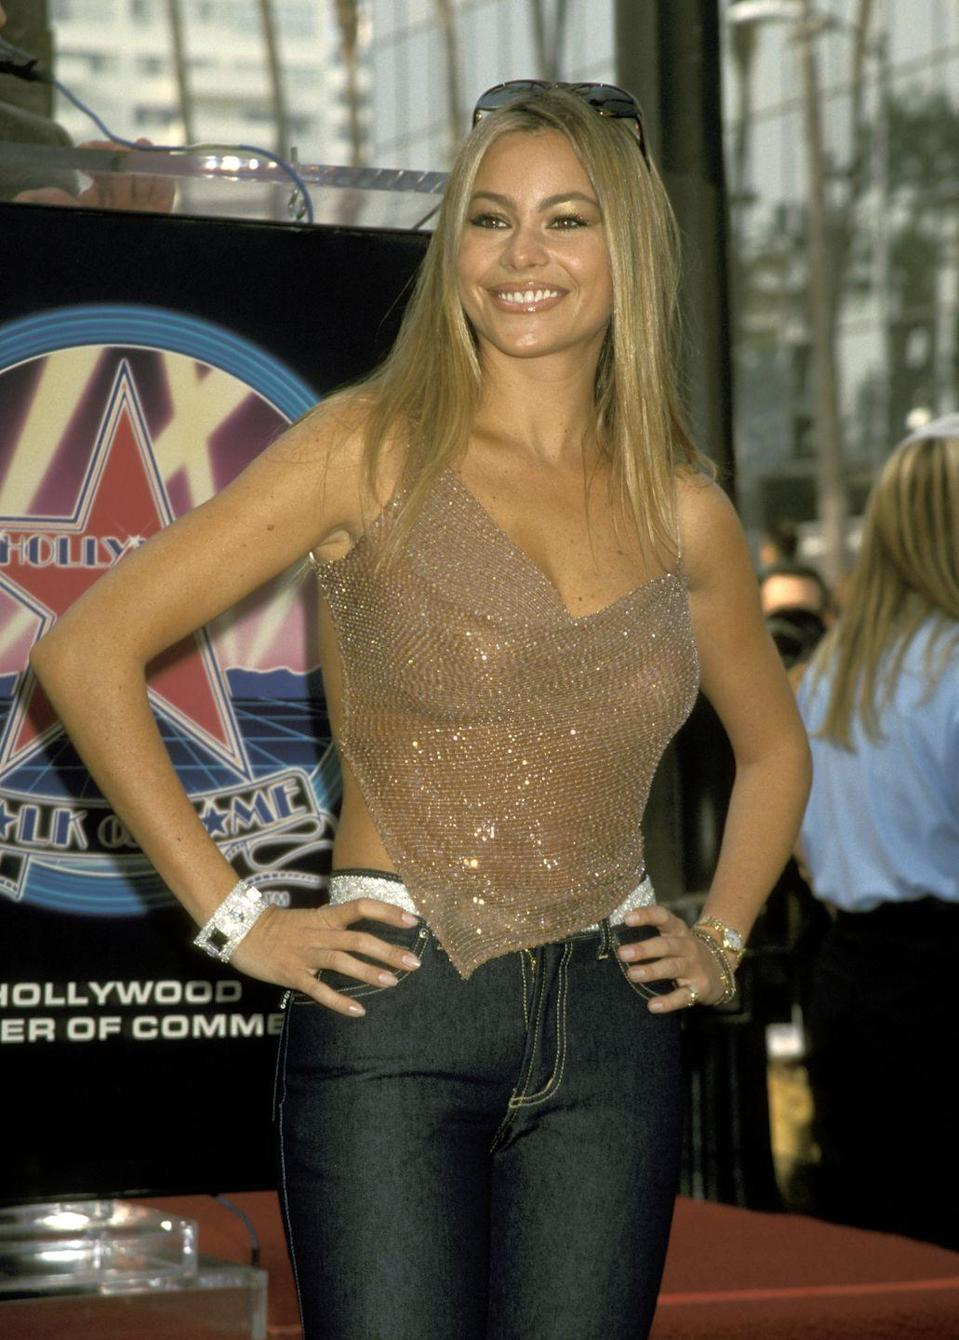 """<p>Even though she was 10 years away from landing her <a href=""""https://www.marieclaire.com/celebrity/g28699661/modern-family-cast-photos-then-now/"""" rel=""""nofollow noopener"""" target=""""_blank"""" data-ylk=""""slk:breakthrough role in"""" class=""""link rapid-noclick-resp"""">breakthrough role in </a><em><a href=""""https://www.marieclaire.com/celebrity/g28699661/modern-family-cast-photos-then-now/"""" rel=""""nofollow noopener"""" target=""""_blank"""" data-ylk=""""slk:Modern Family"""" class=""""link rapid-noclick-resp"""">Modern Family</a></em>, Sofía Vergara was already working her way up to the star status she has now in the late '90s, after moving to the U.S. from her native country of Colombia in 1998.</p>"""